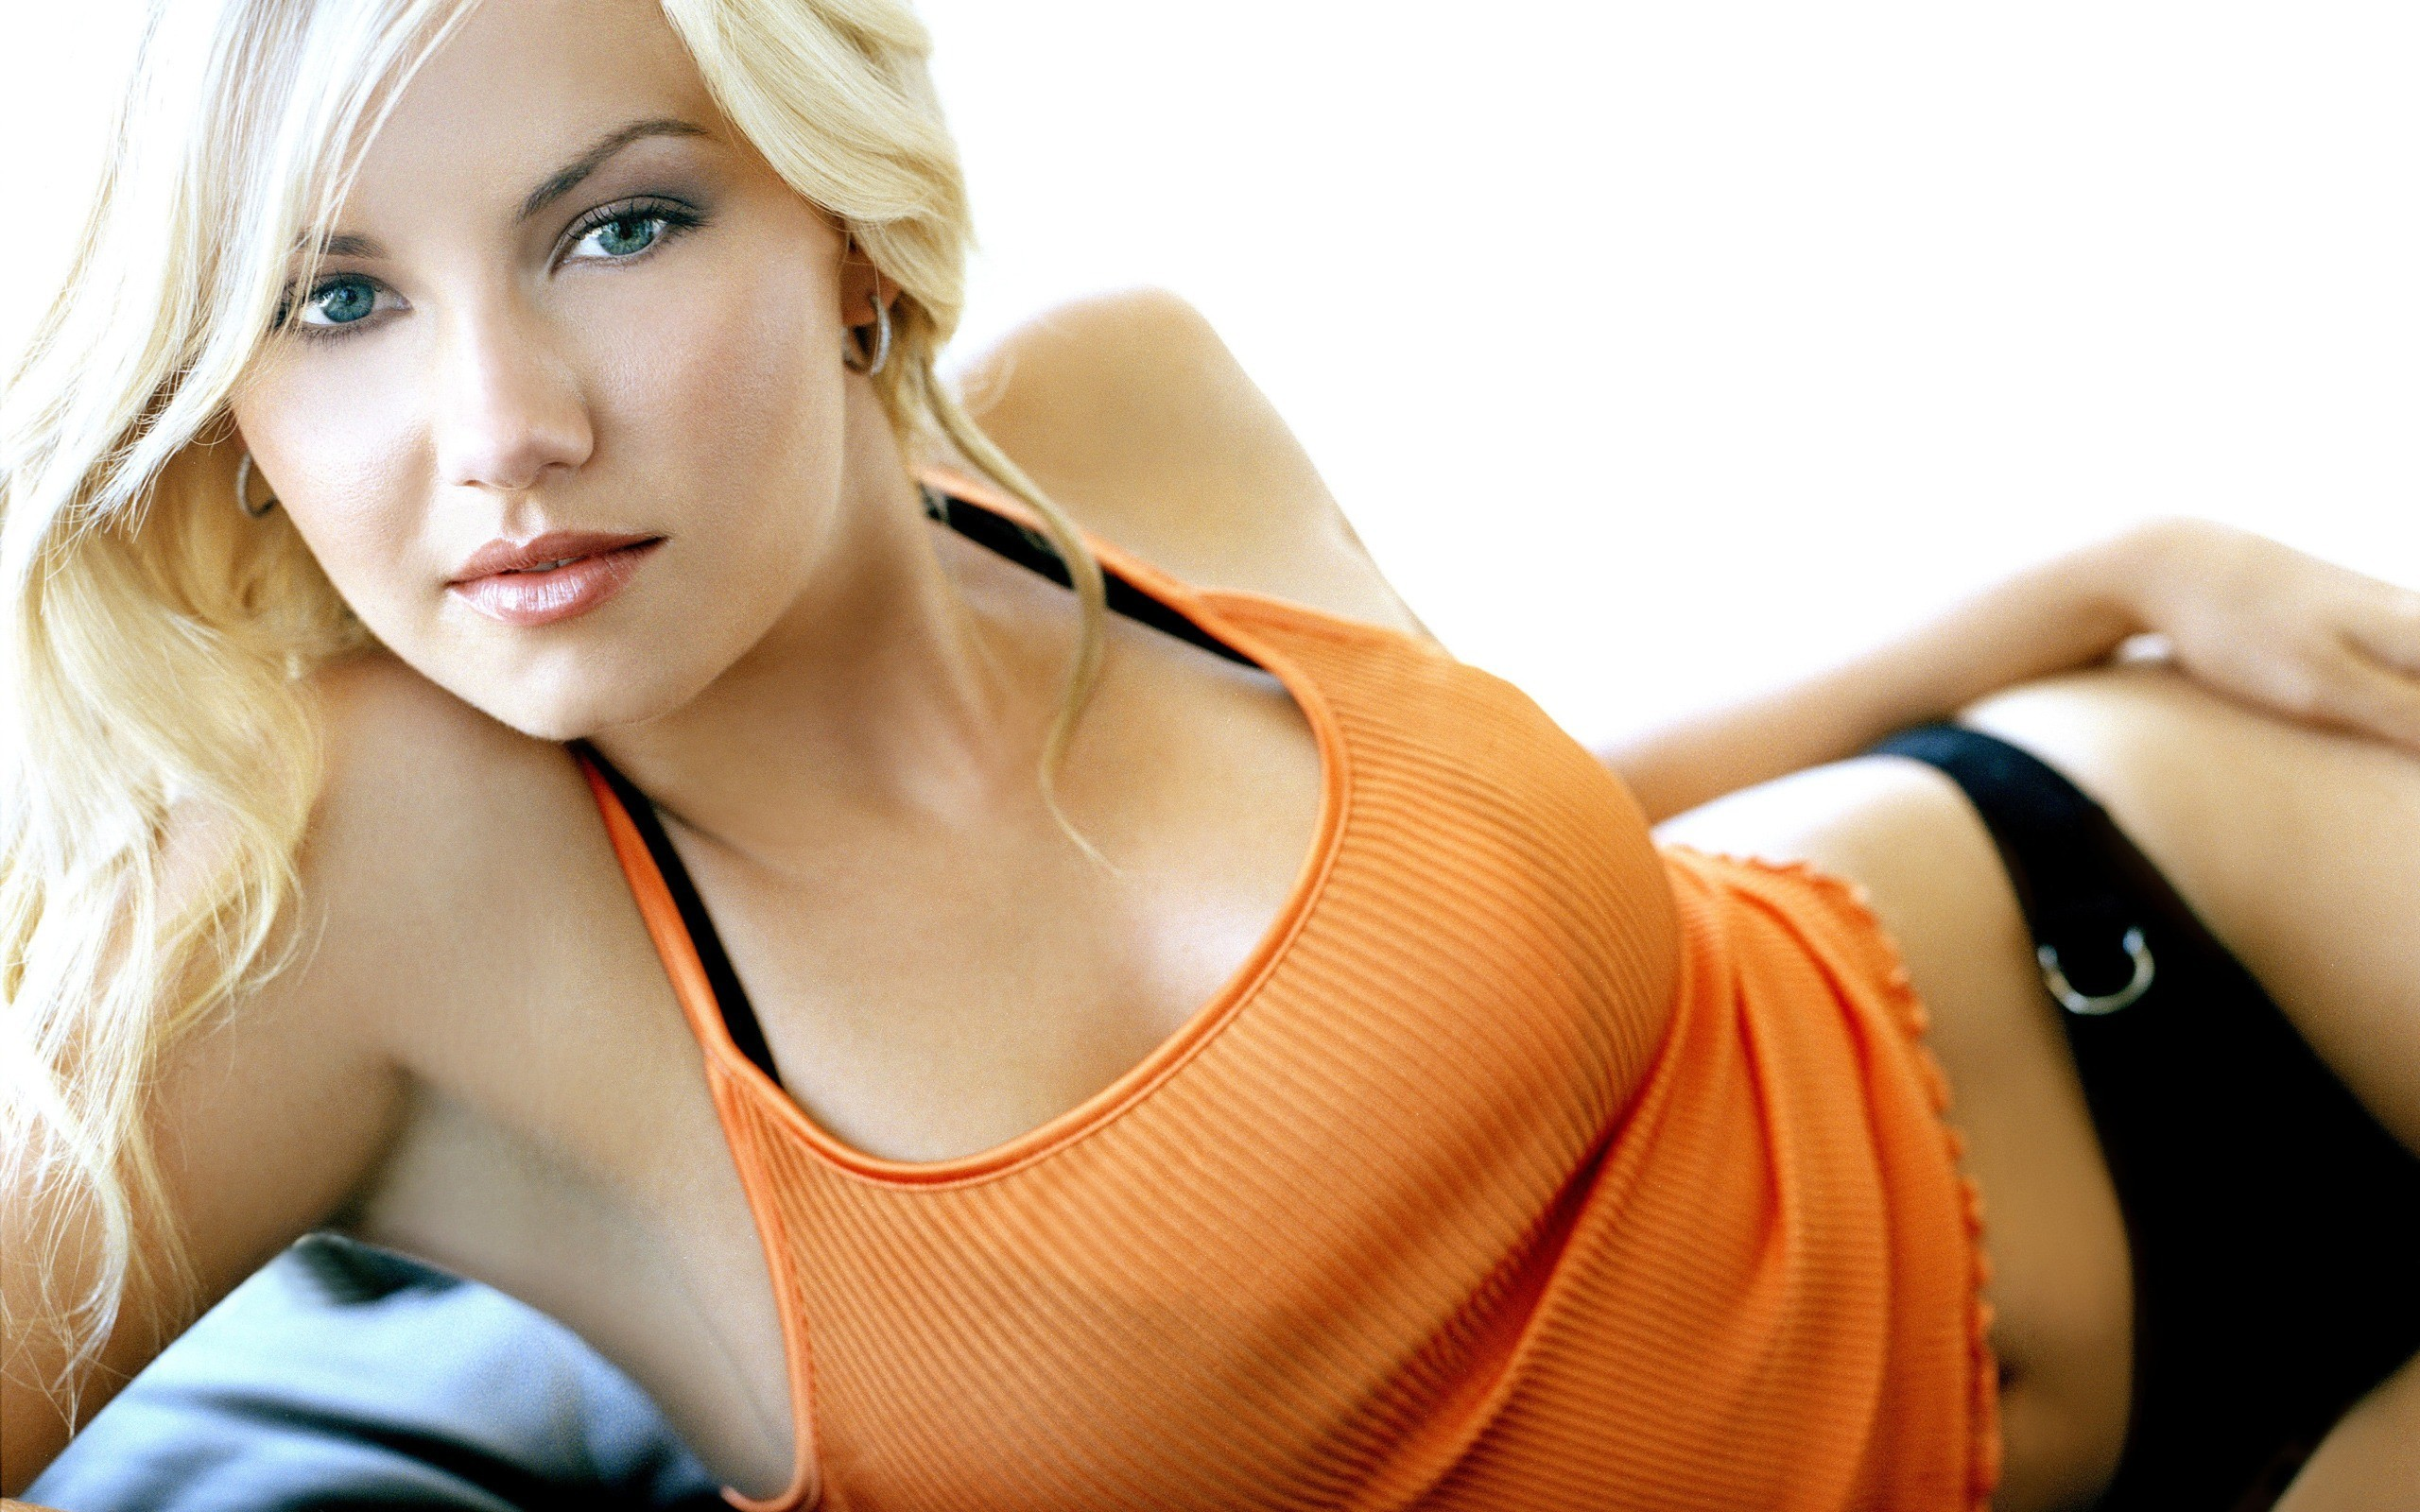 blondes legs woman eyes HD Wallpaper